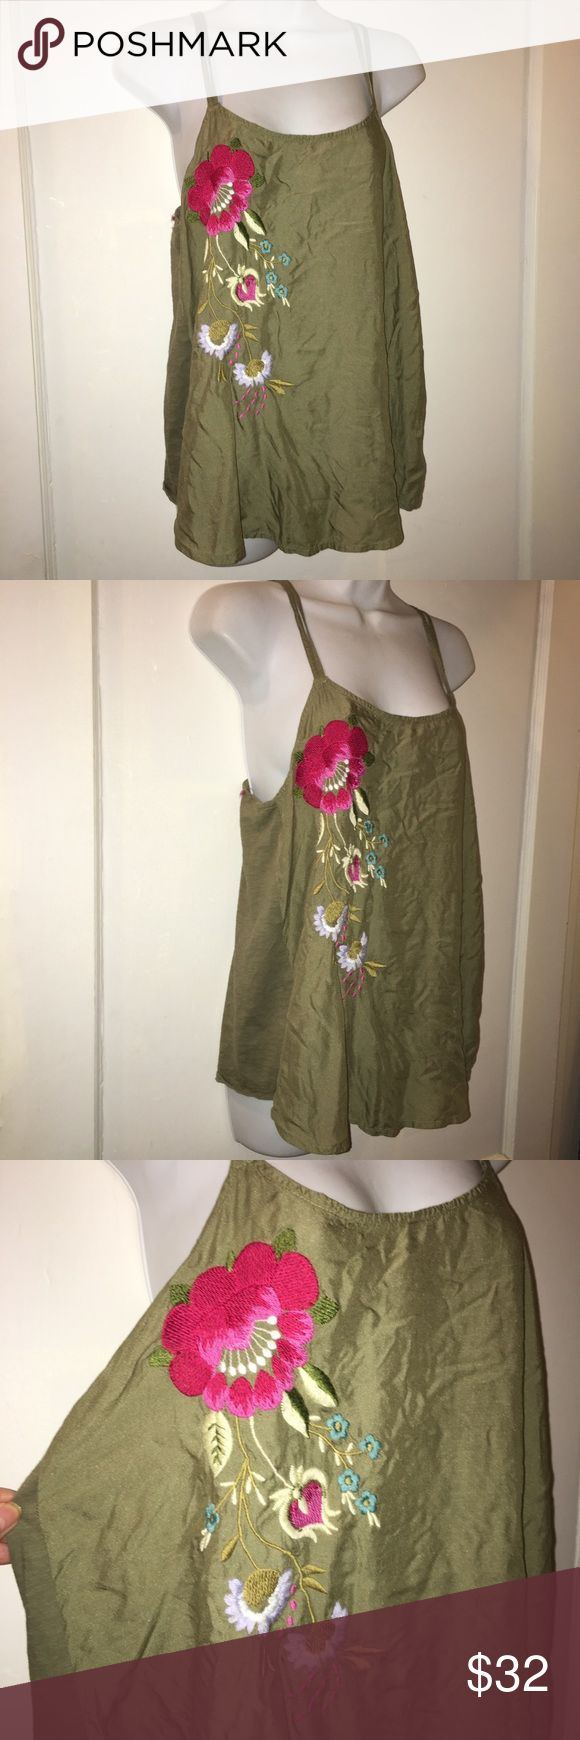 Akemi + Kin Army Green Cami Tank Embroidered Sz M Akemi + Kin Army Green Cami Tank Embroidered Sz M  Soft army green with beautiful floral embroidery.   Anthropologie Brand Akemi + Kin  Sz M  Adorable double straps  Hangs really neat. Fabric on front is a bit different from fabric on back.  Would be great with some high waisted jeans shorts for a summer or spring music festival Anthropologie Tops Camisoles